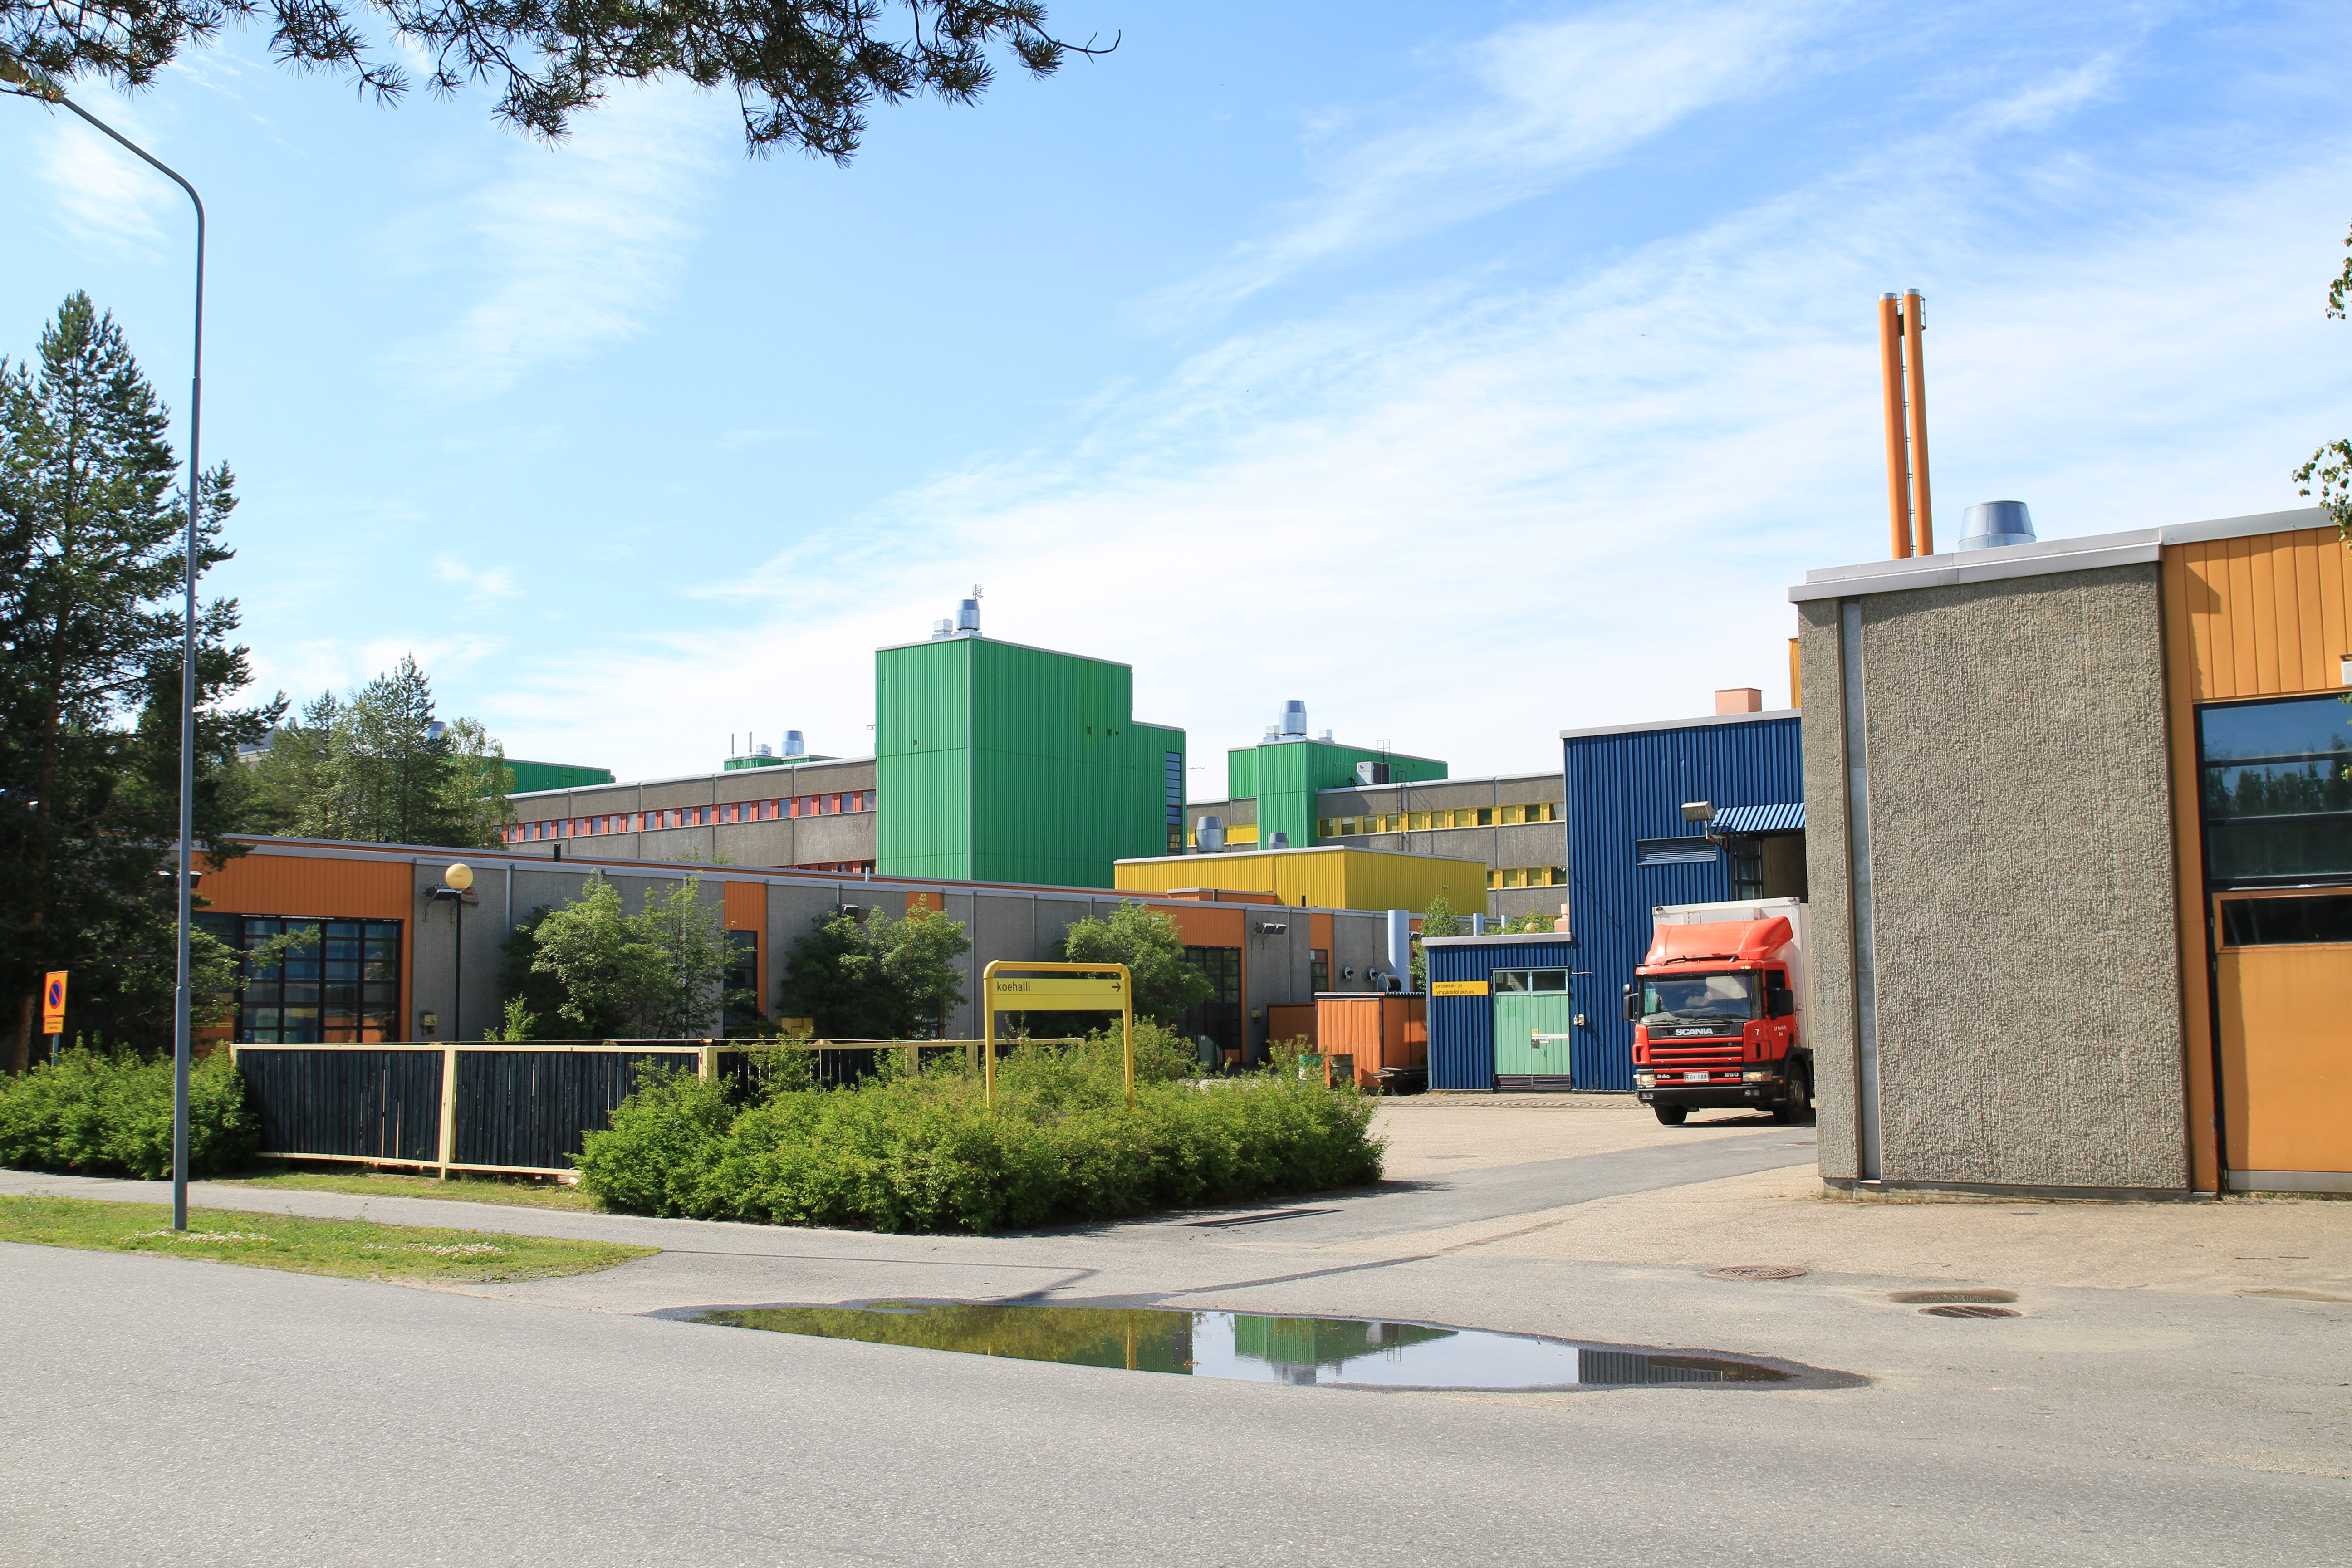 File:University-of-Oulu-old-part-of-building.jpg - Wikimedia Commons